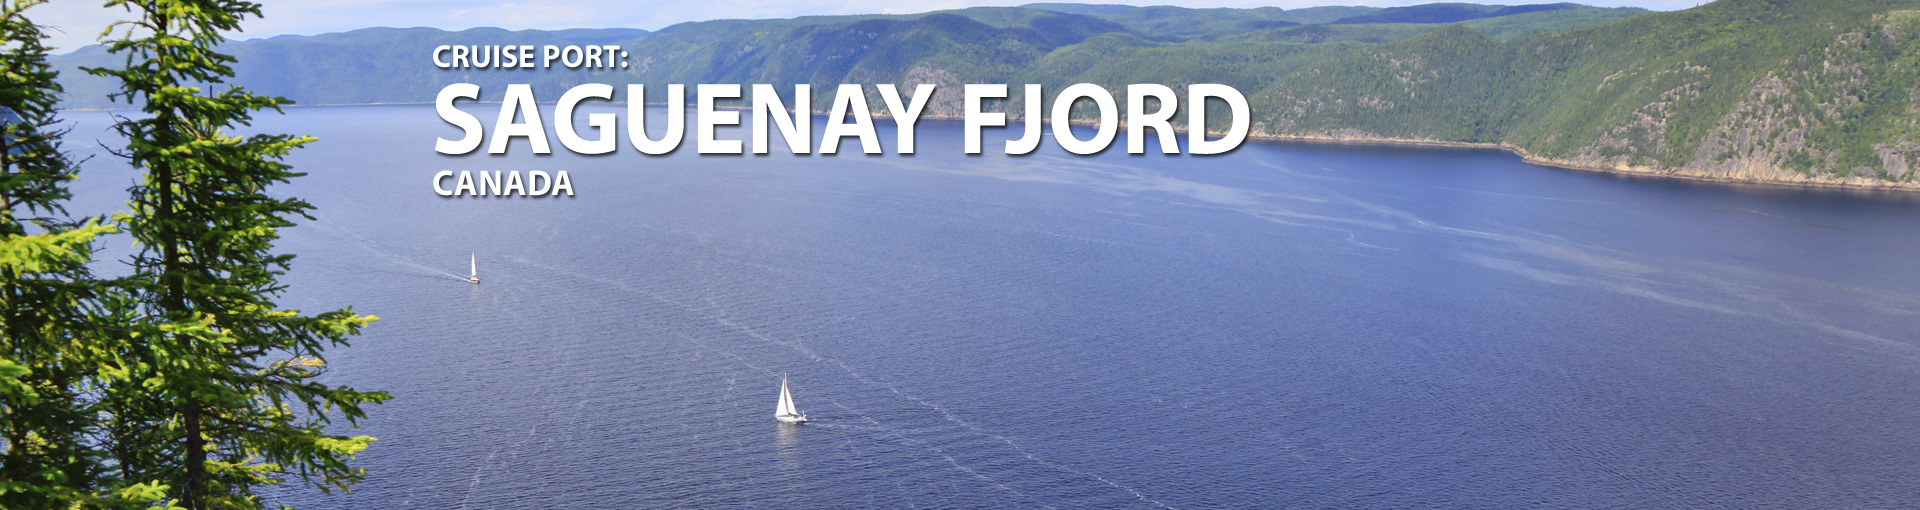 Cruises to Saguenay Fjord, Canada